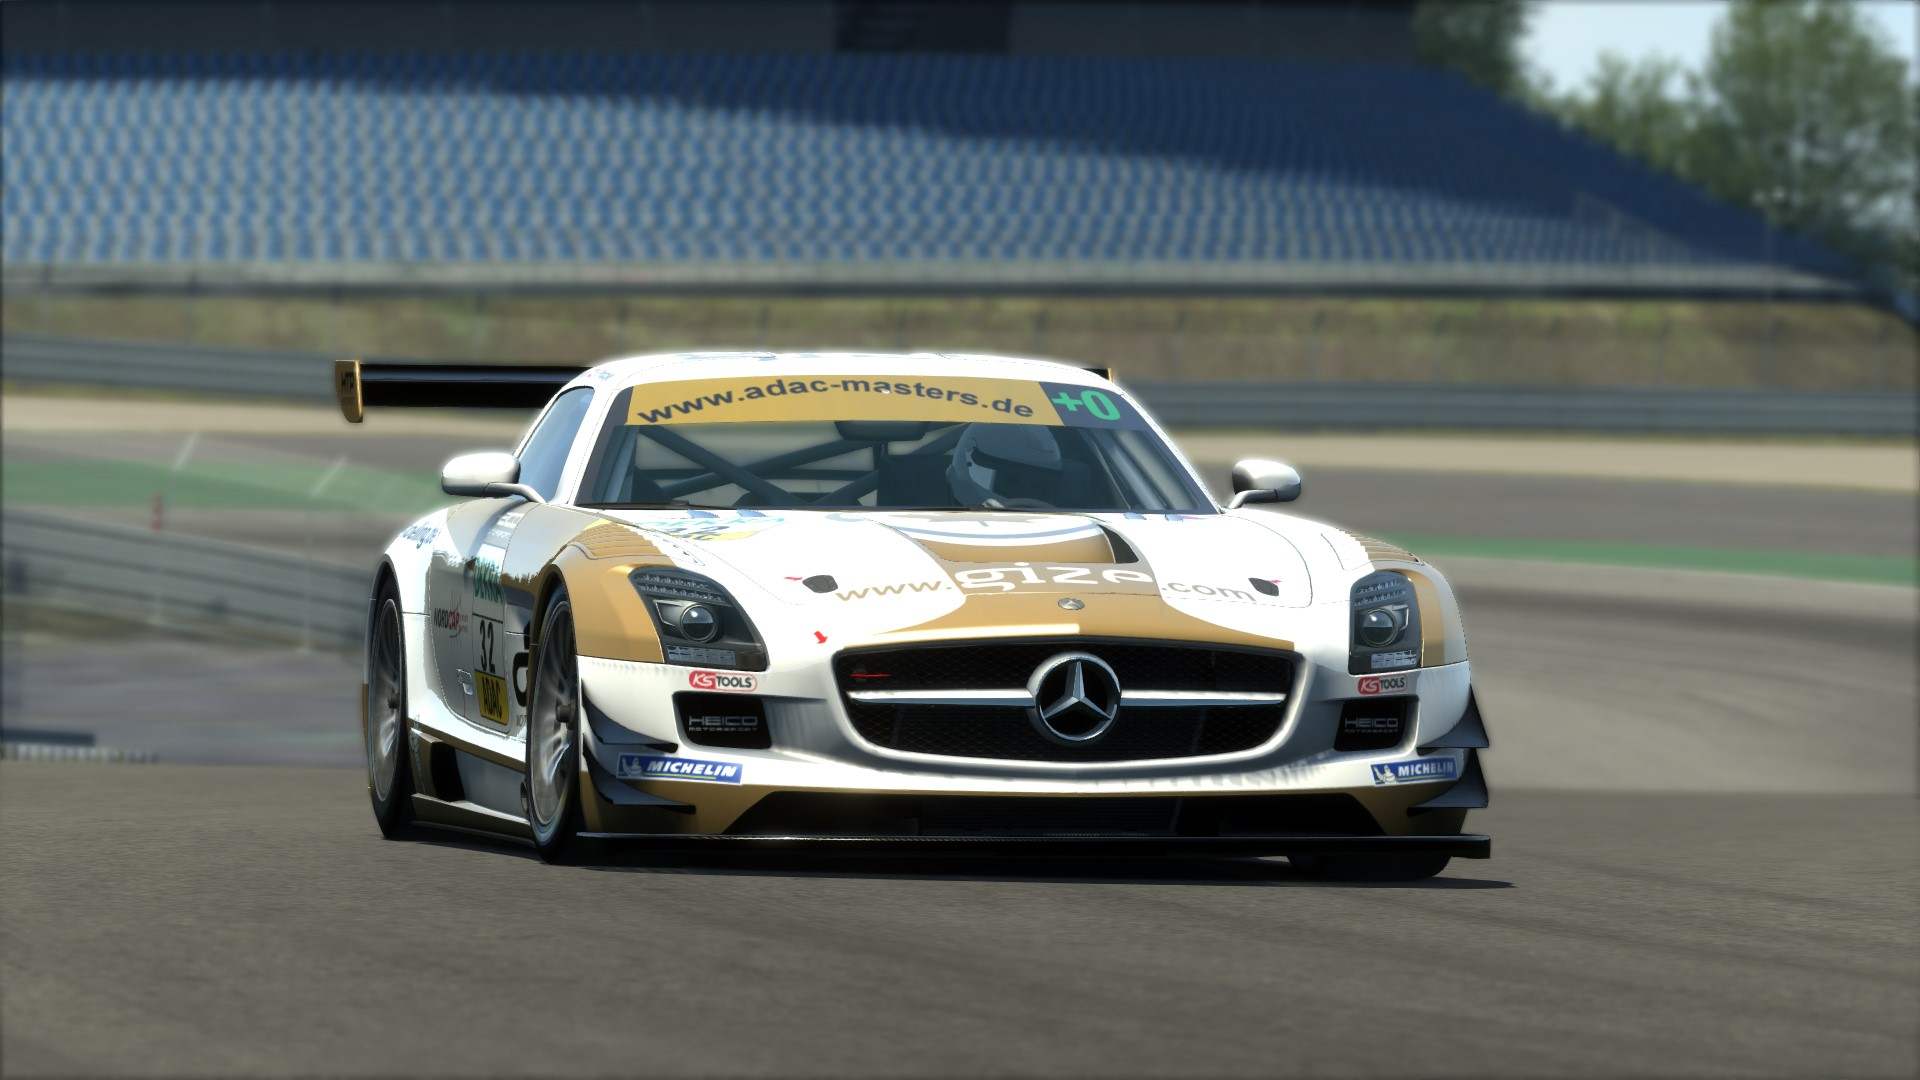 Screenshot_mercedes_sls_gt3_nurburgring_21-1-116-21-6-4.jpg